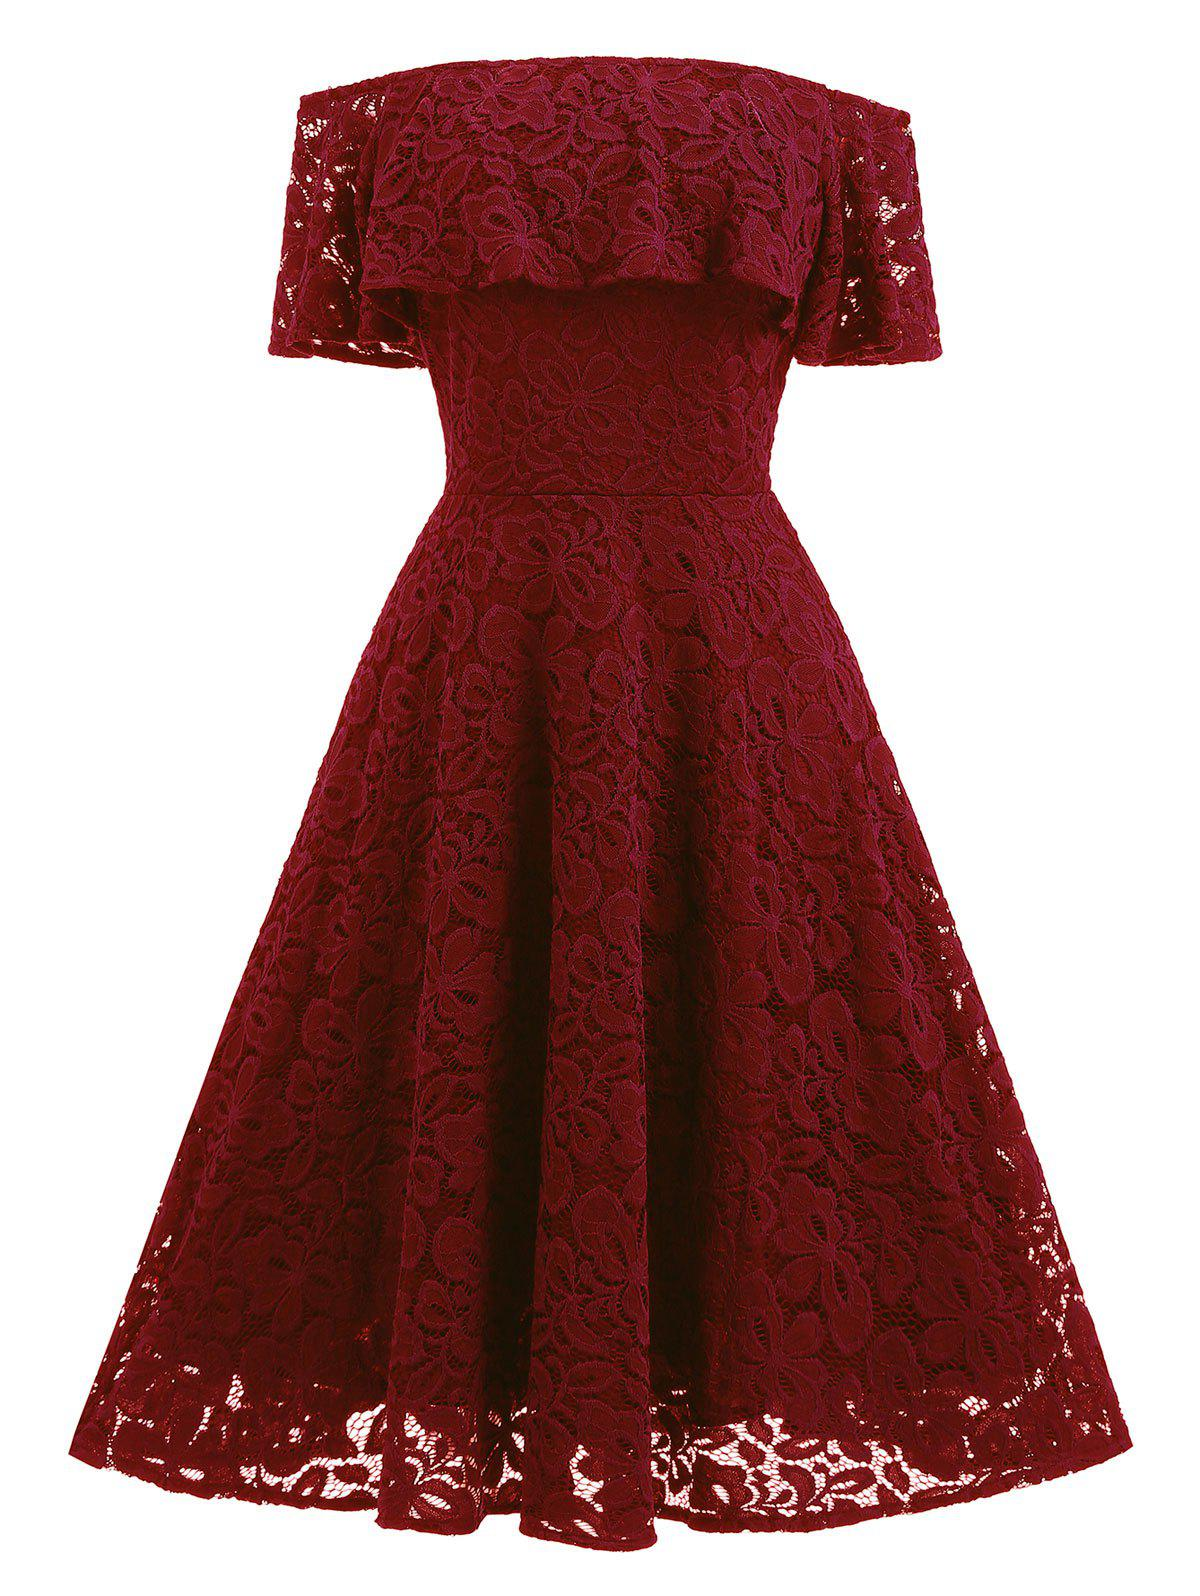 Lace Ruffle Vintage Off The Shoulder DressWOMEN<br><br>Size: S; Color: WINE RED; Style: Vintage; Material: Polyester,Spandex; Silhouette: A-Line; Dresses Length: Knee-Length; Neckline: Off The Shoulder; Sleeve Length: Short Sleeves; Embellishment: Lace; Pattern Type: Solid; With Belt: No; Season: Fall,Spring; Weight: 0.5500kg; Package Contents: 1 x Dress;